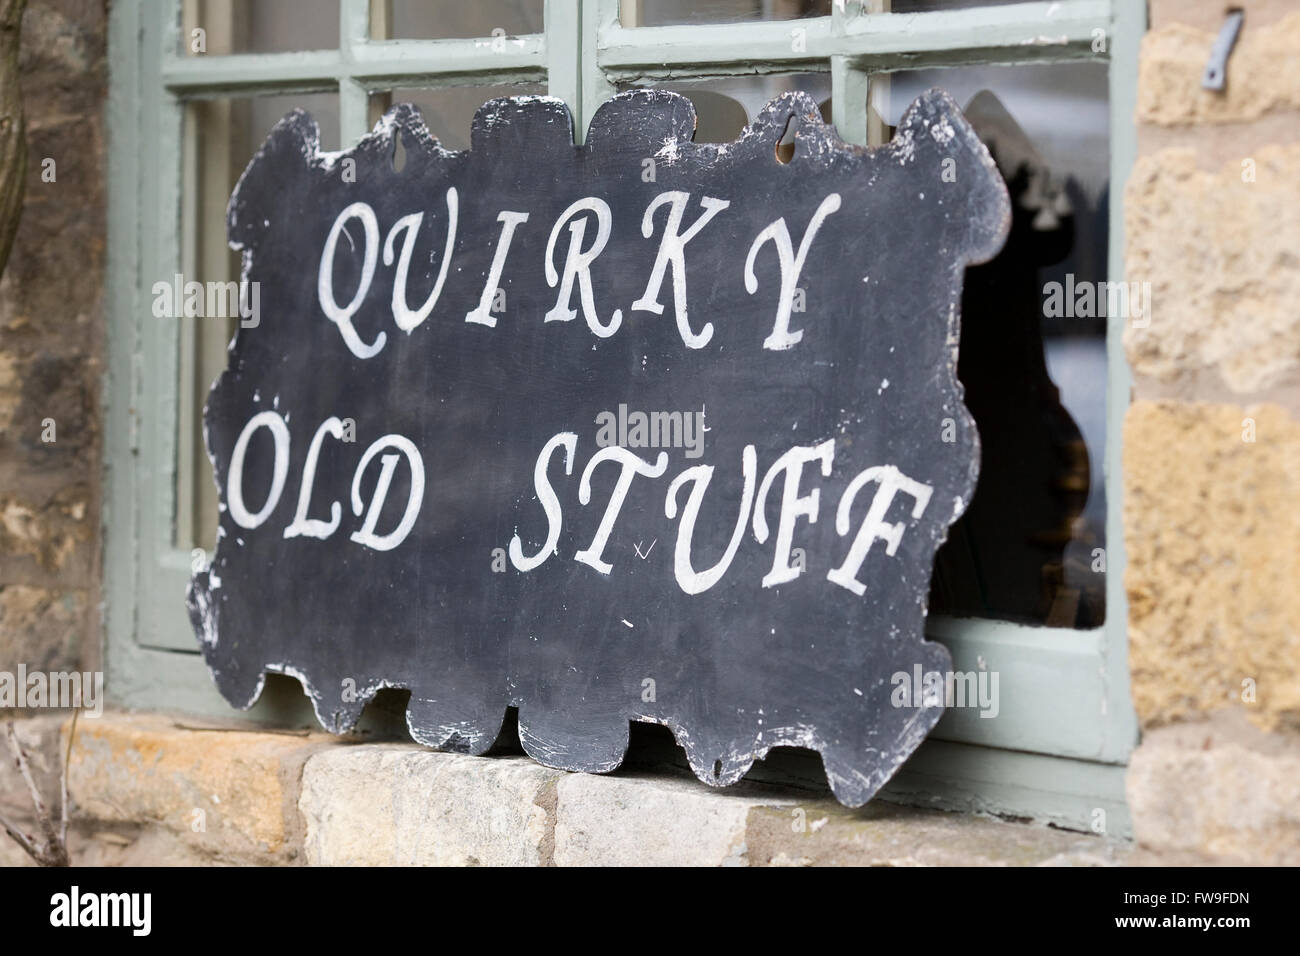 Vintage shop sign, Stow on the Wold. Stock Photo